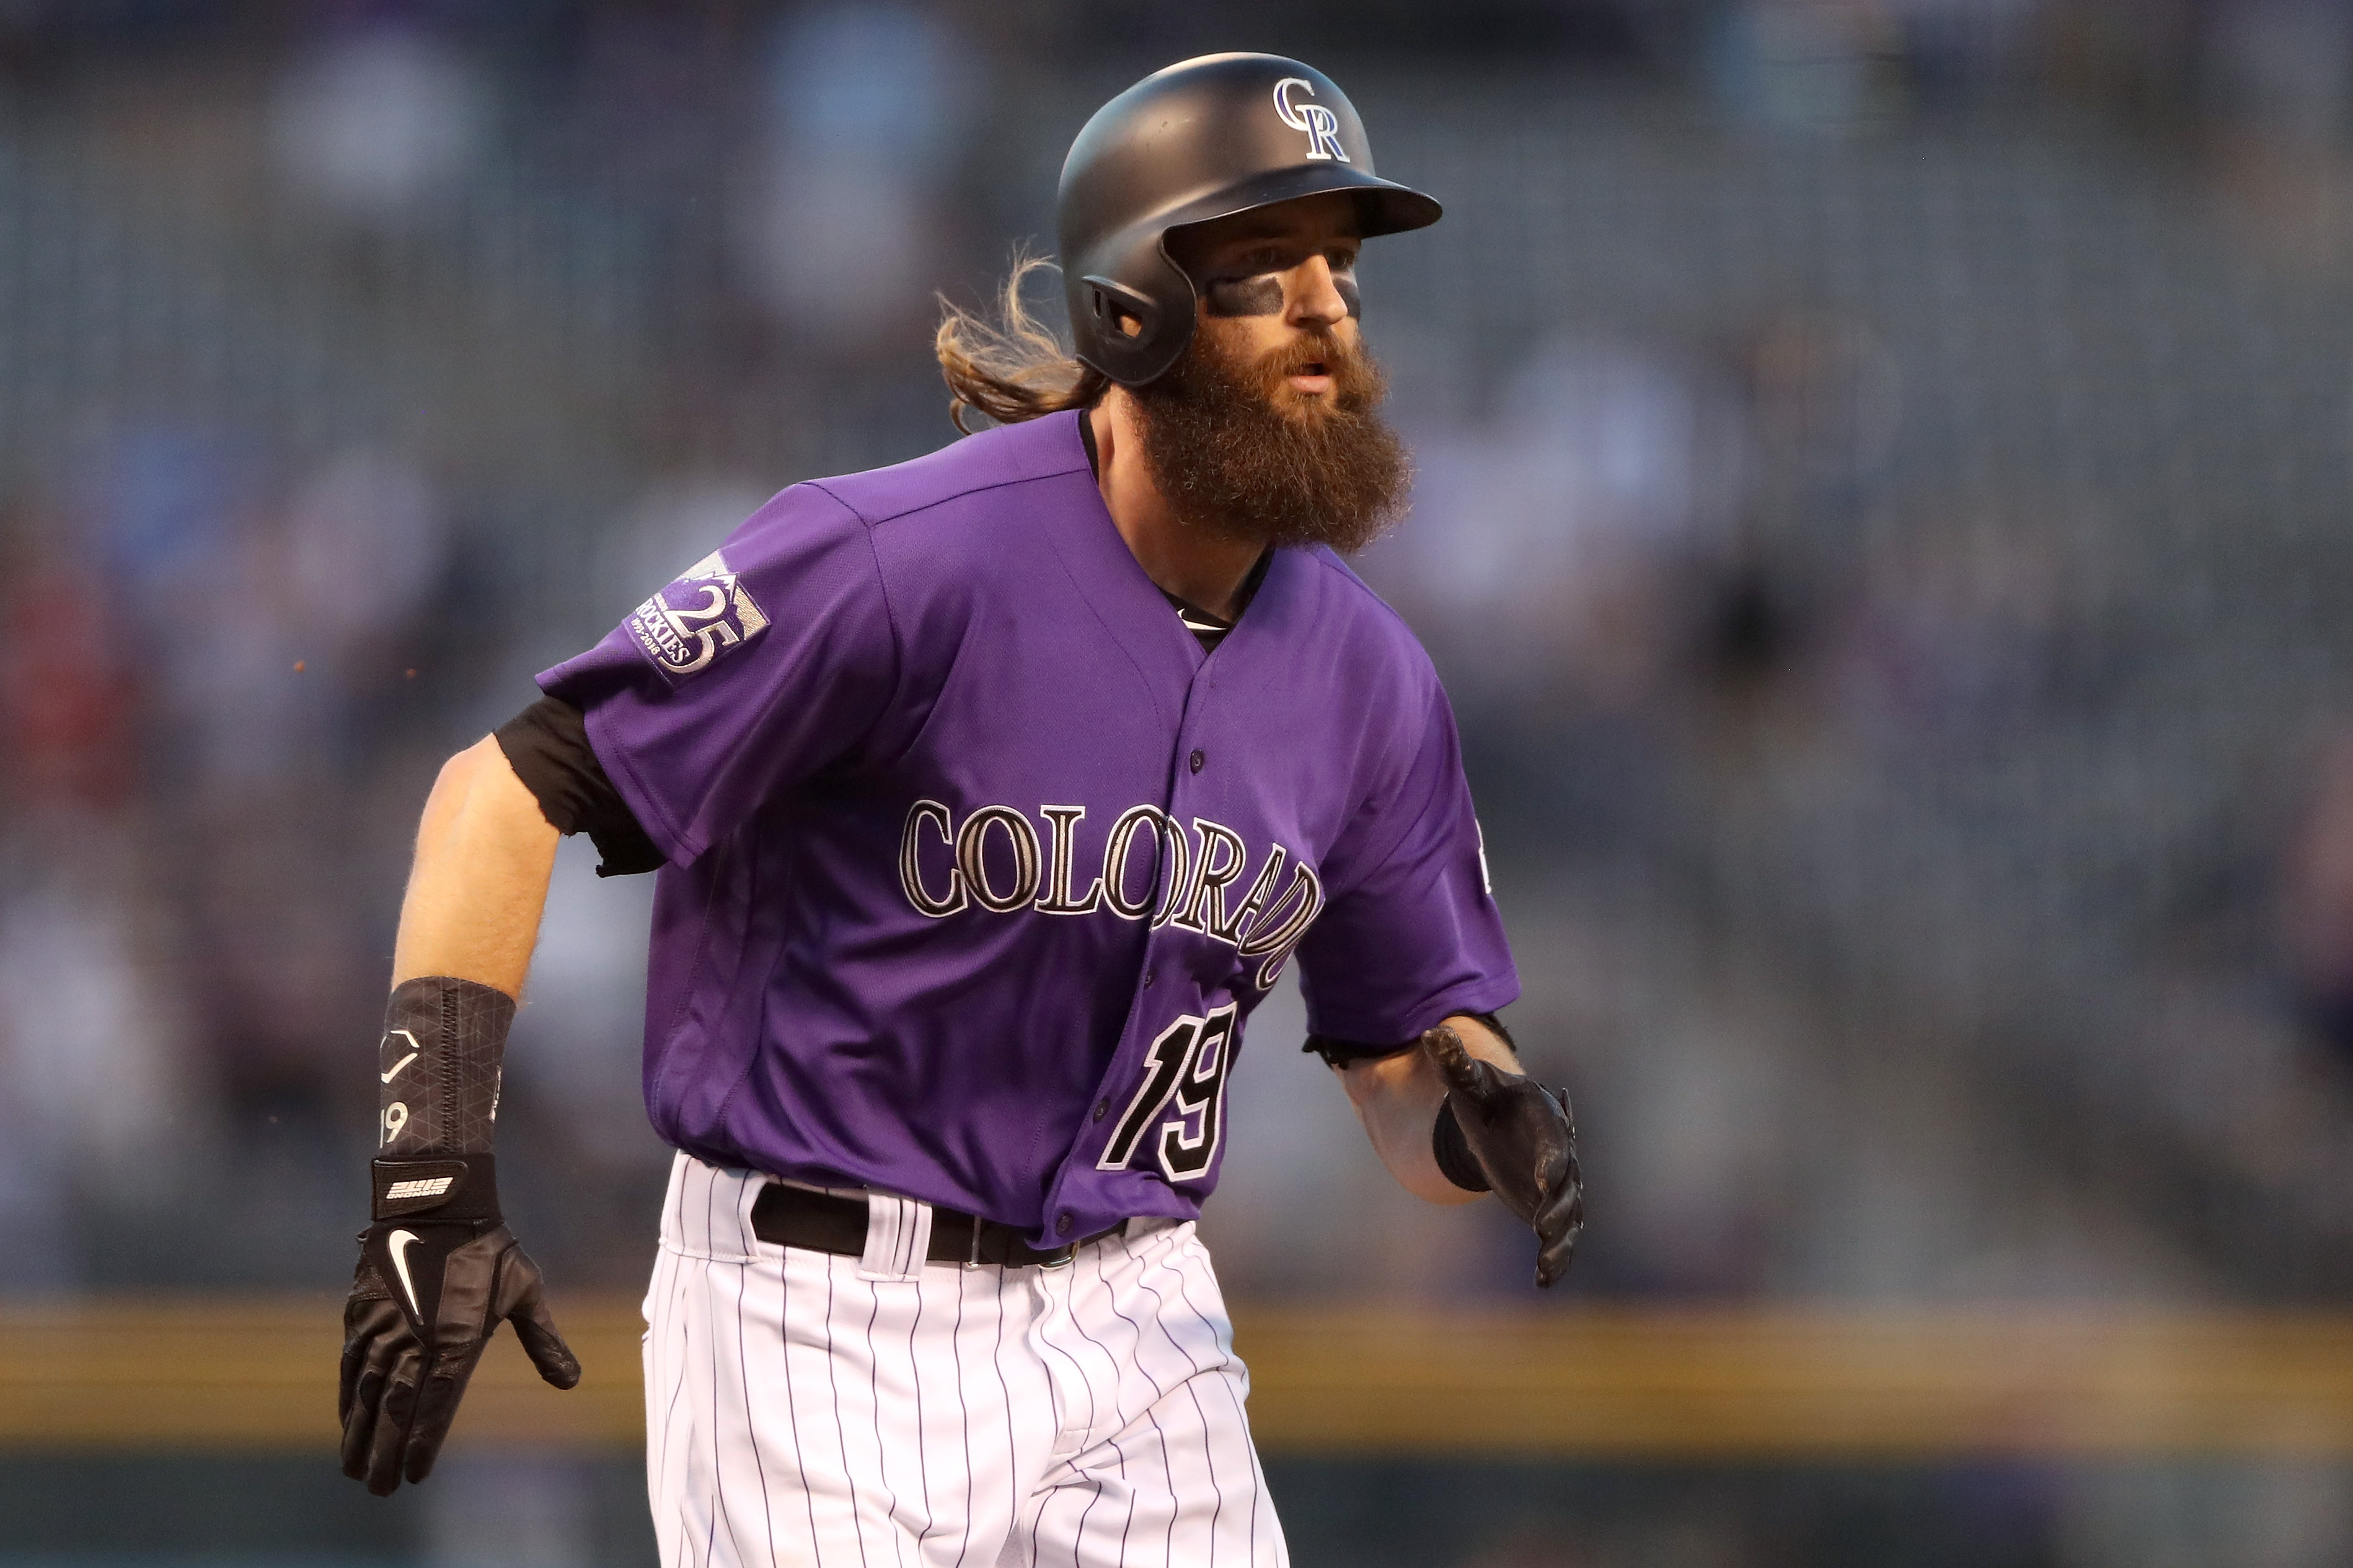 MLB Playoffs 2018: Charlie Blackmon is better than your favorite player